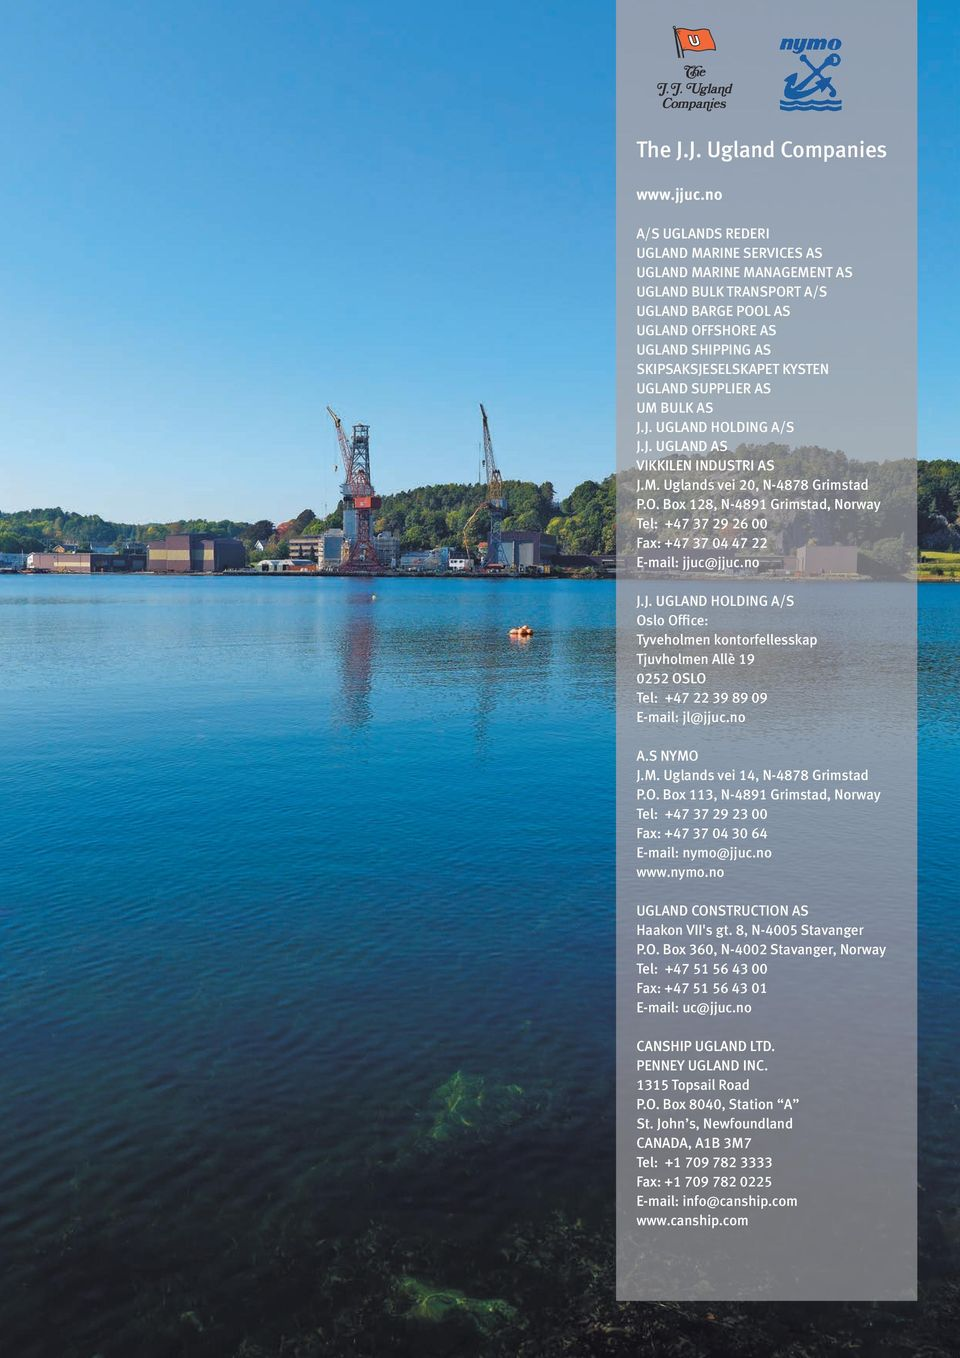 SUPPLIER AS UM BULK AS J.J. UGLAND HOLDING A/S J.J. UGLAND AS VIKKILEN INDUSTRI AS J.M. Uglands vei 20, N-4878 Grimstad P.O. Box 128, N-4891 Grimstad, Norway Tel: +47 37 29 26 00 Fax: +47 37 04 47 22 E-mail: jjuc@jjuc.